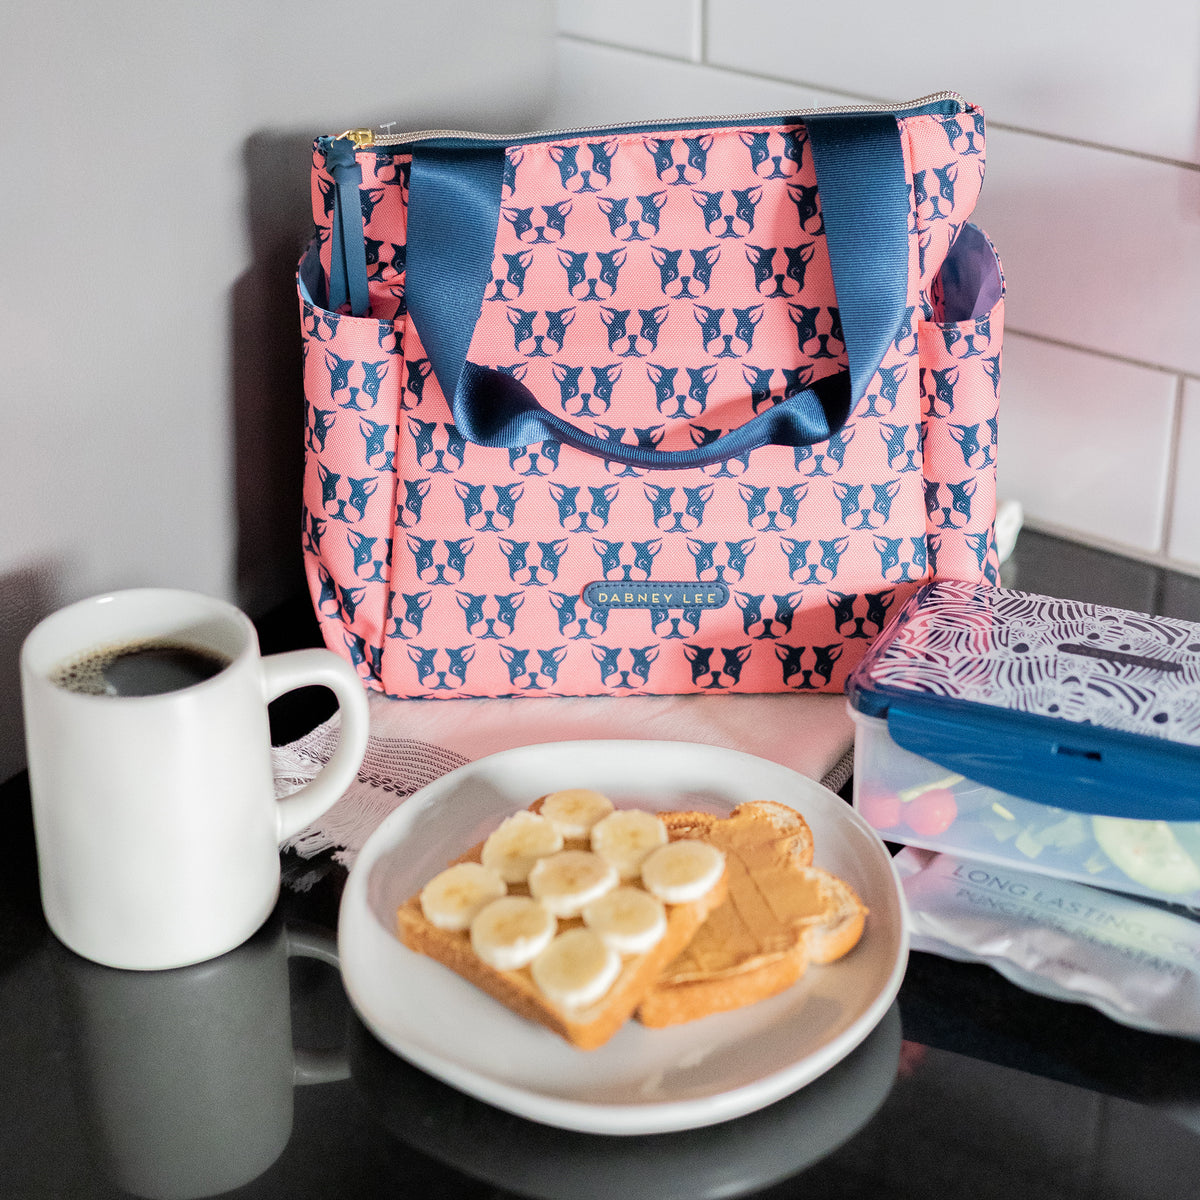 Arctic Zone® Dabney Lee Karina Tote - Polly Coral - Lifestyle, breakfast before work